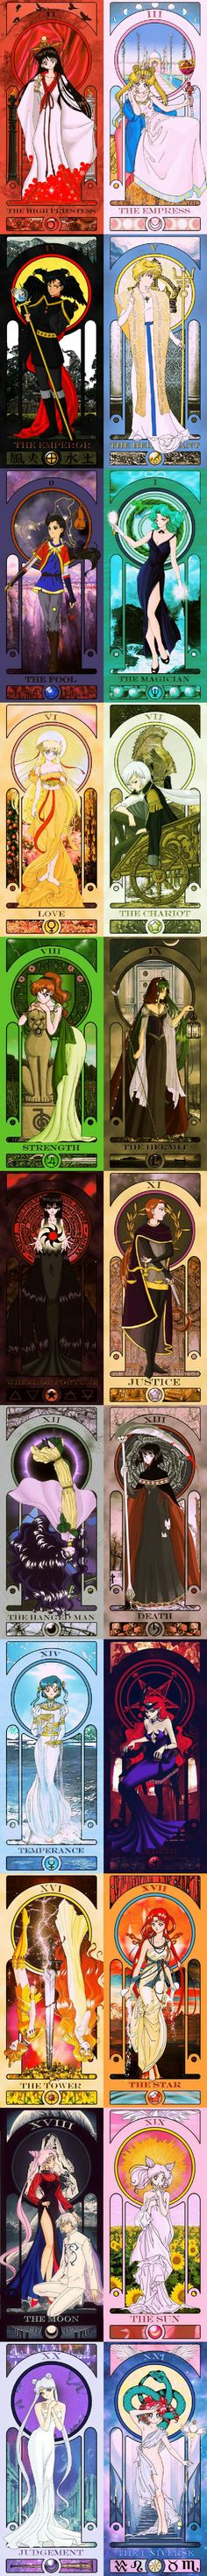 ... whoa! Imagine using these as an attack or summons? Oooooo. *ponders-*   Sailor Moon Tarot cards